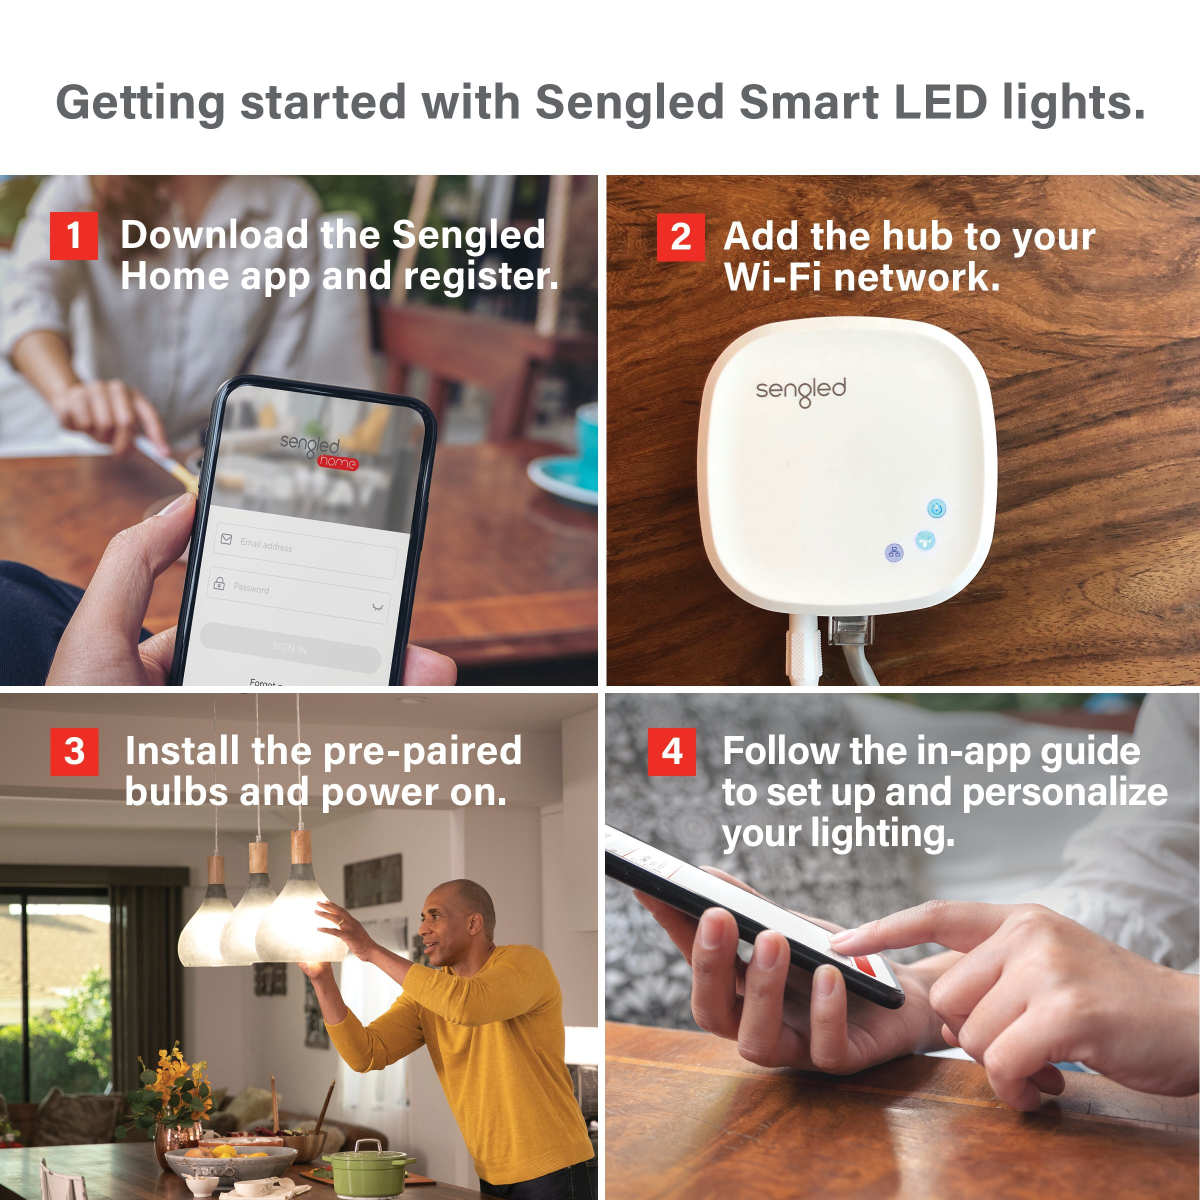 Setting up your Smart Multicolor LED Light System